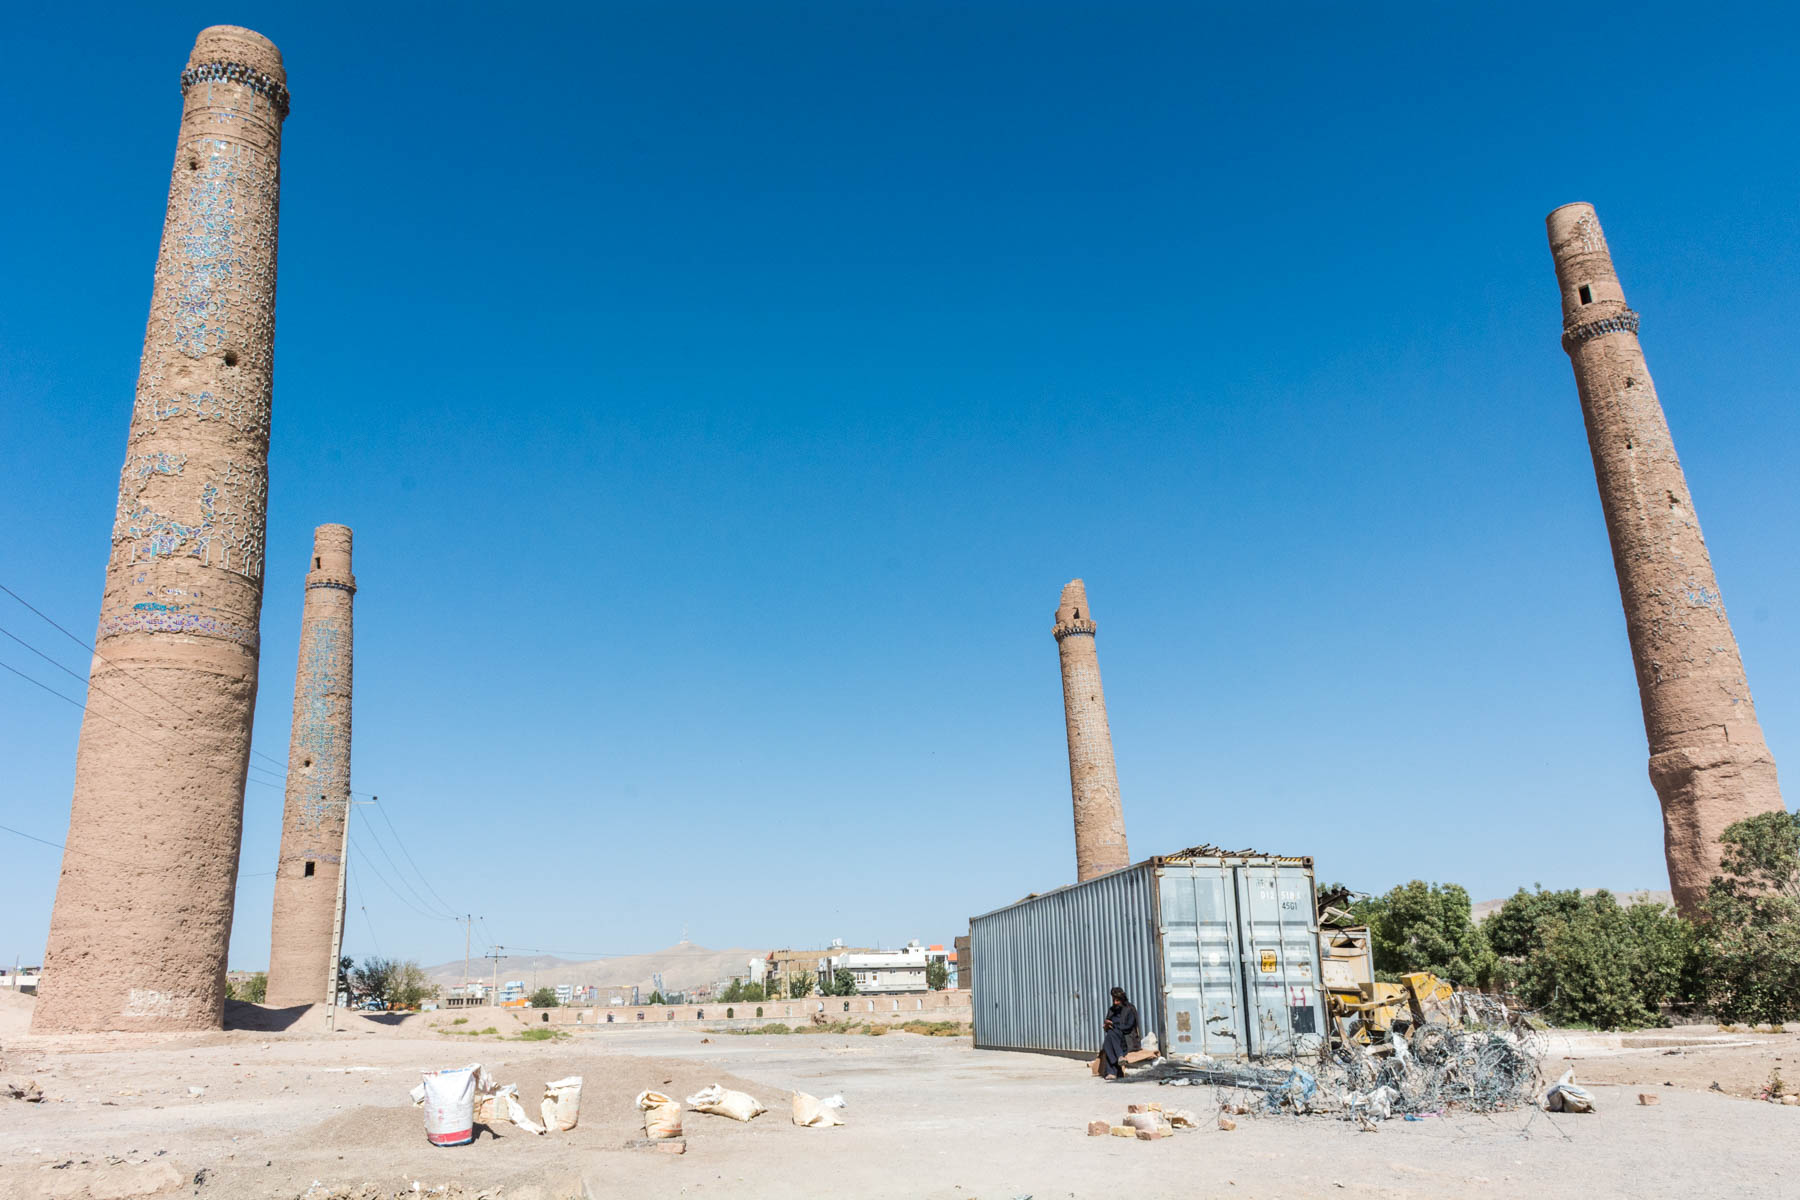 The last of the minarets in the Musalla complex in Herat, Afghanistan - Lost With Purpose